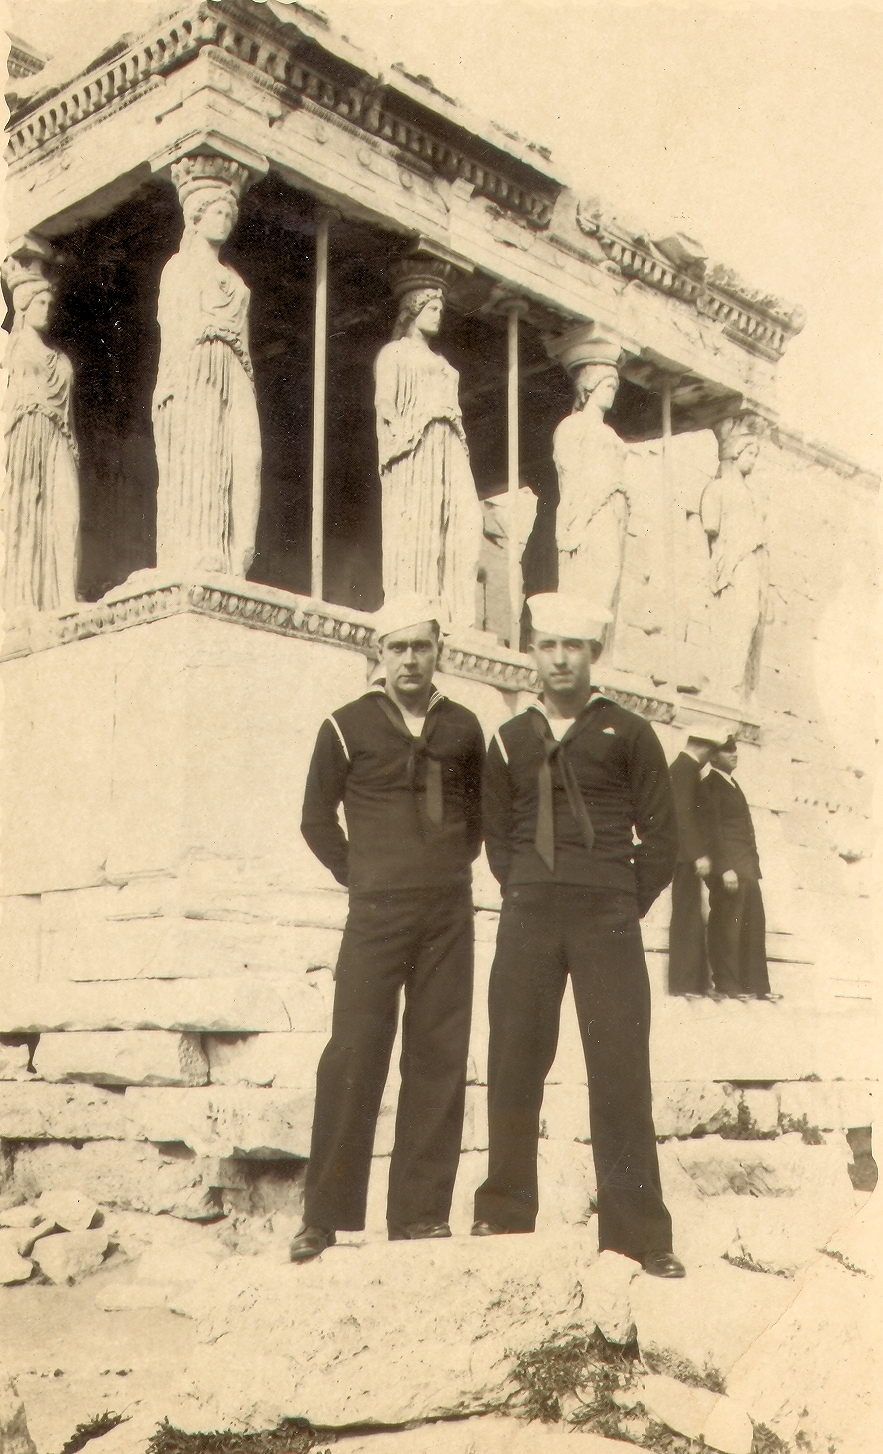 John Mason Rudolph Sr. - Athens, Greece - April 2, 1948